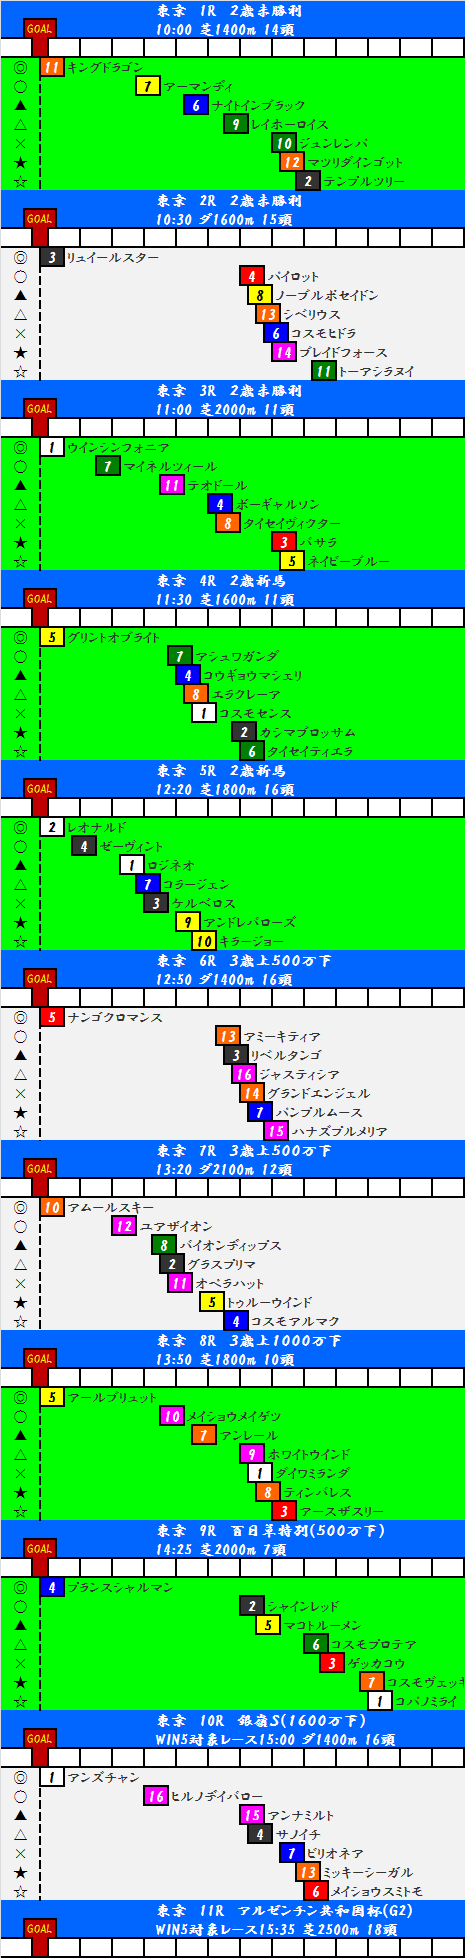 2015110801.png